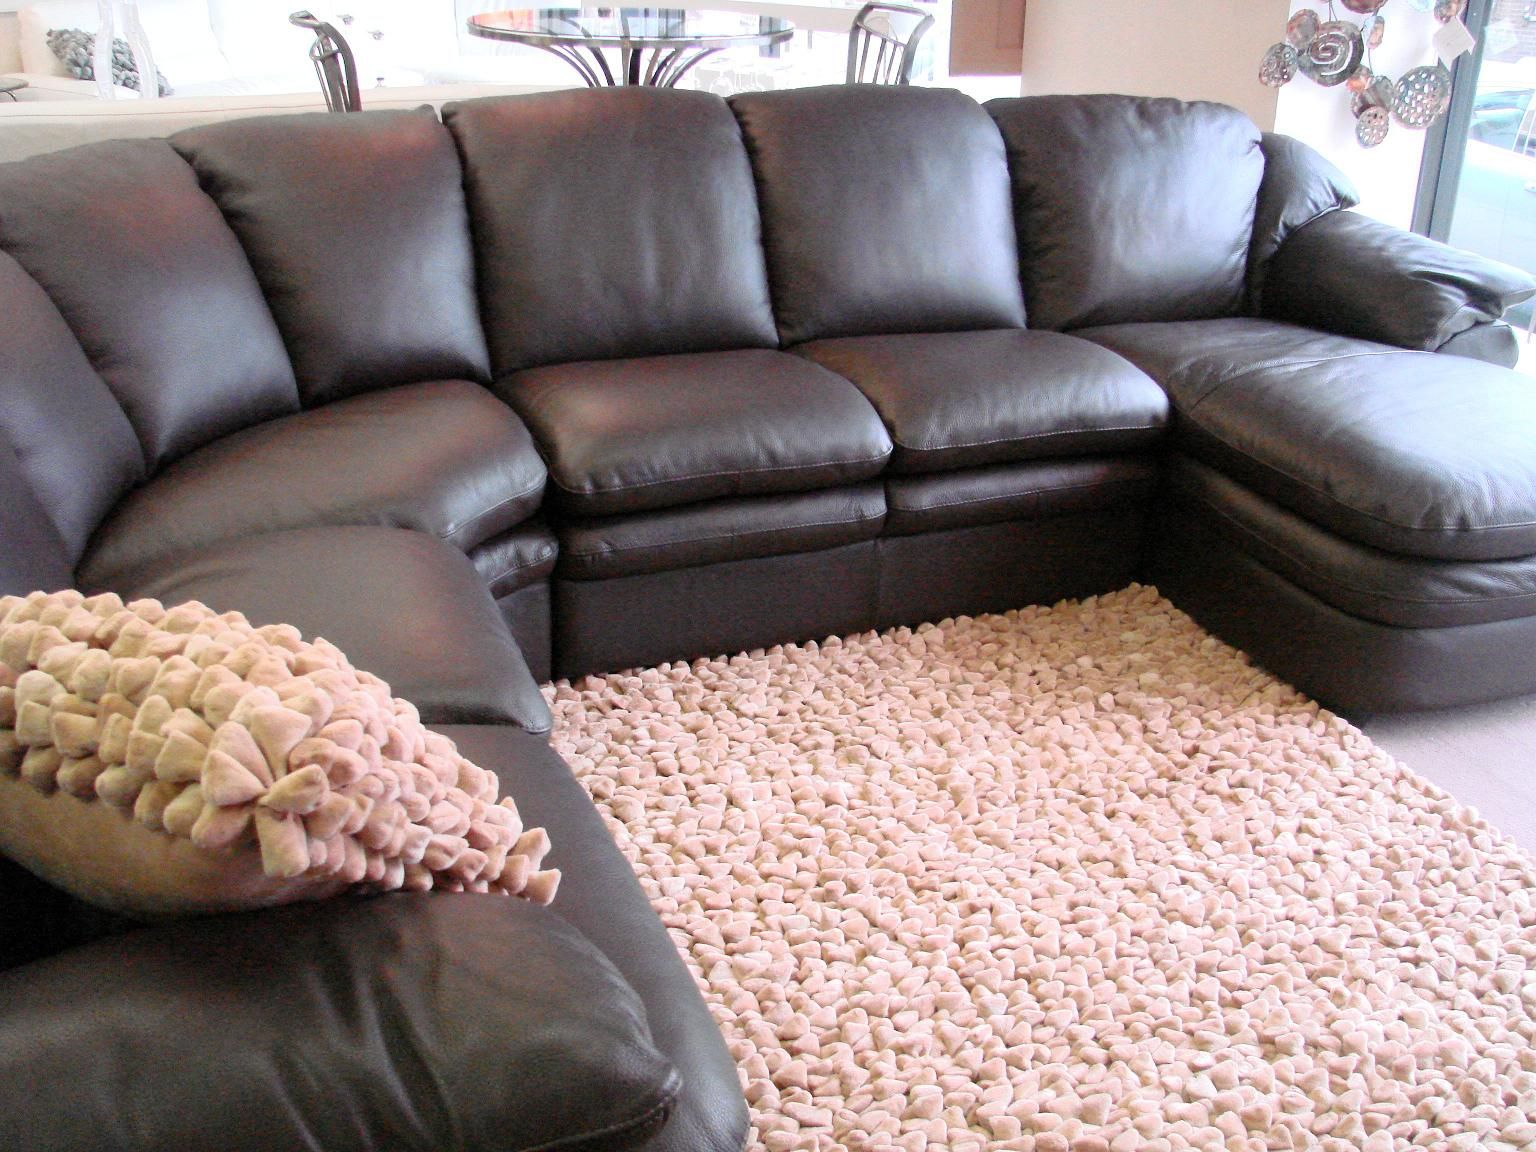 Shiny Leather Sectional For Sale Leather Couches For Sale